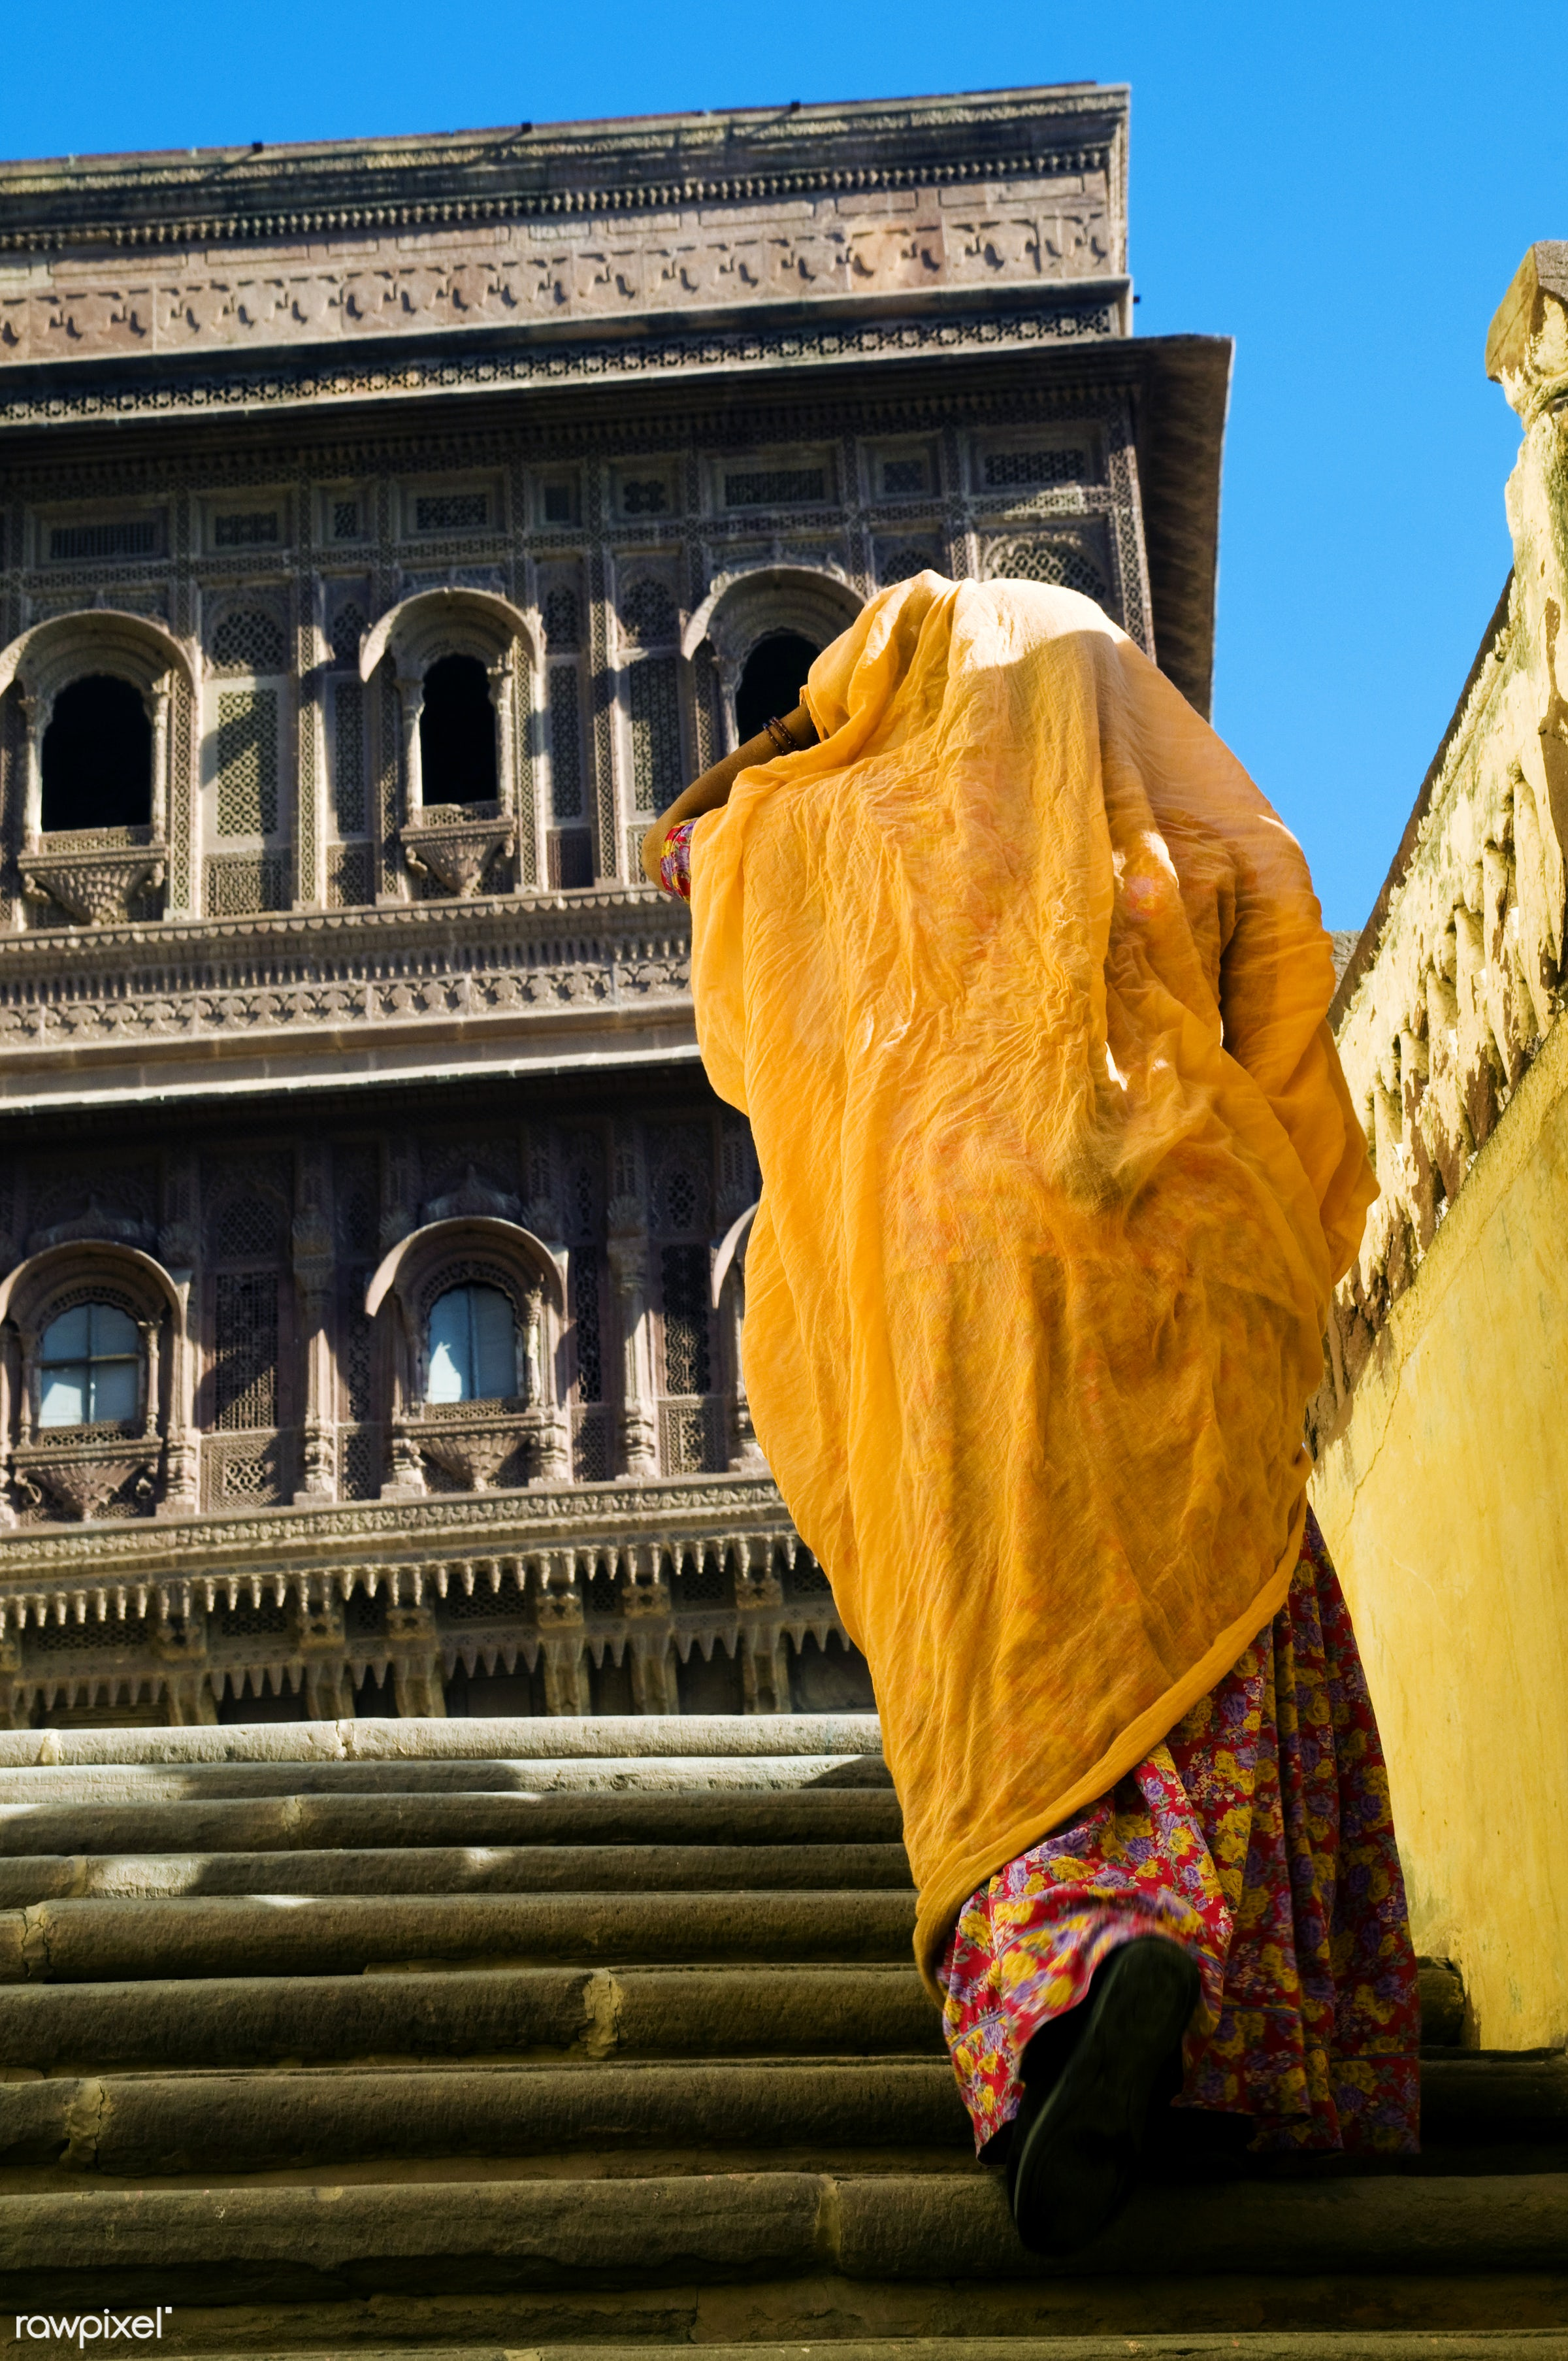 Indian woman in Mehrangarh Fort, Rajasthan, India - lifestyles, ancient, architecture, architecture and buildings, asian and...